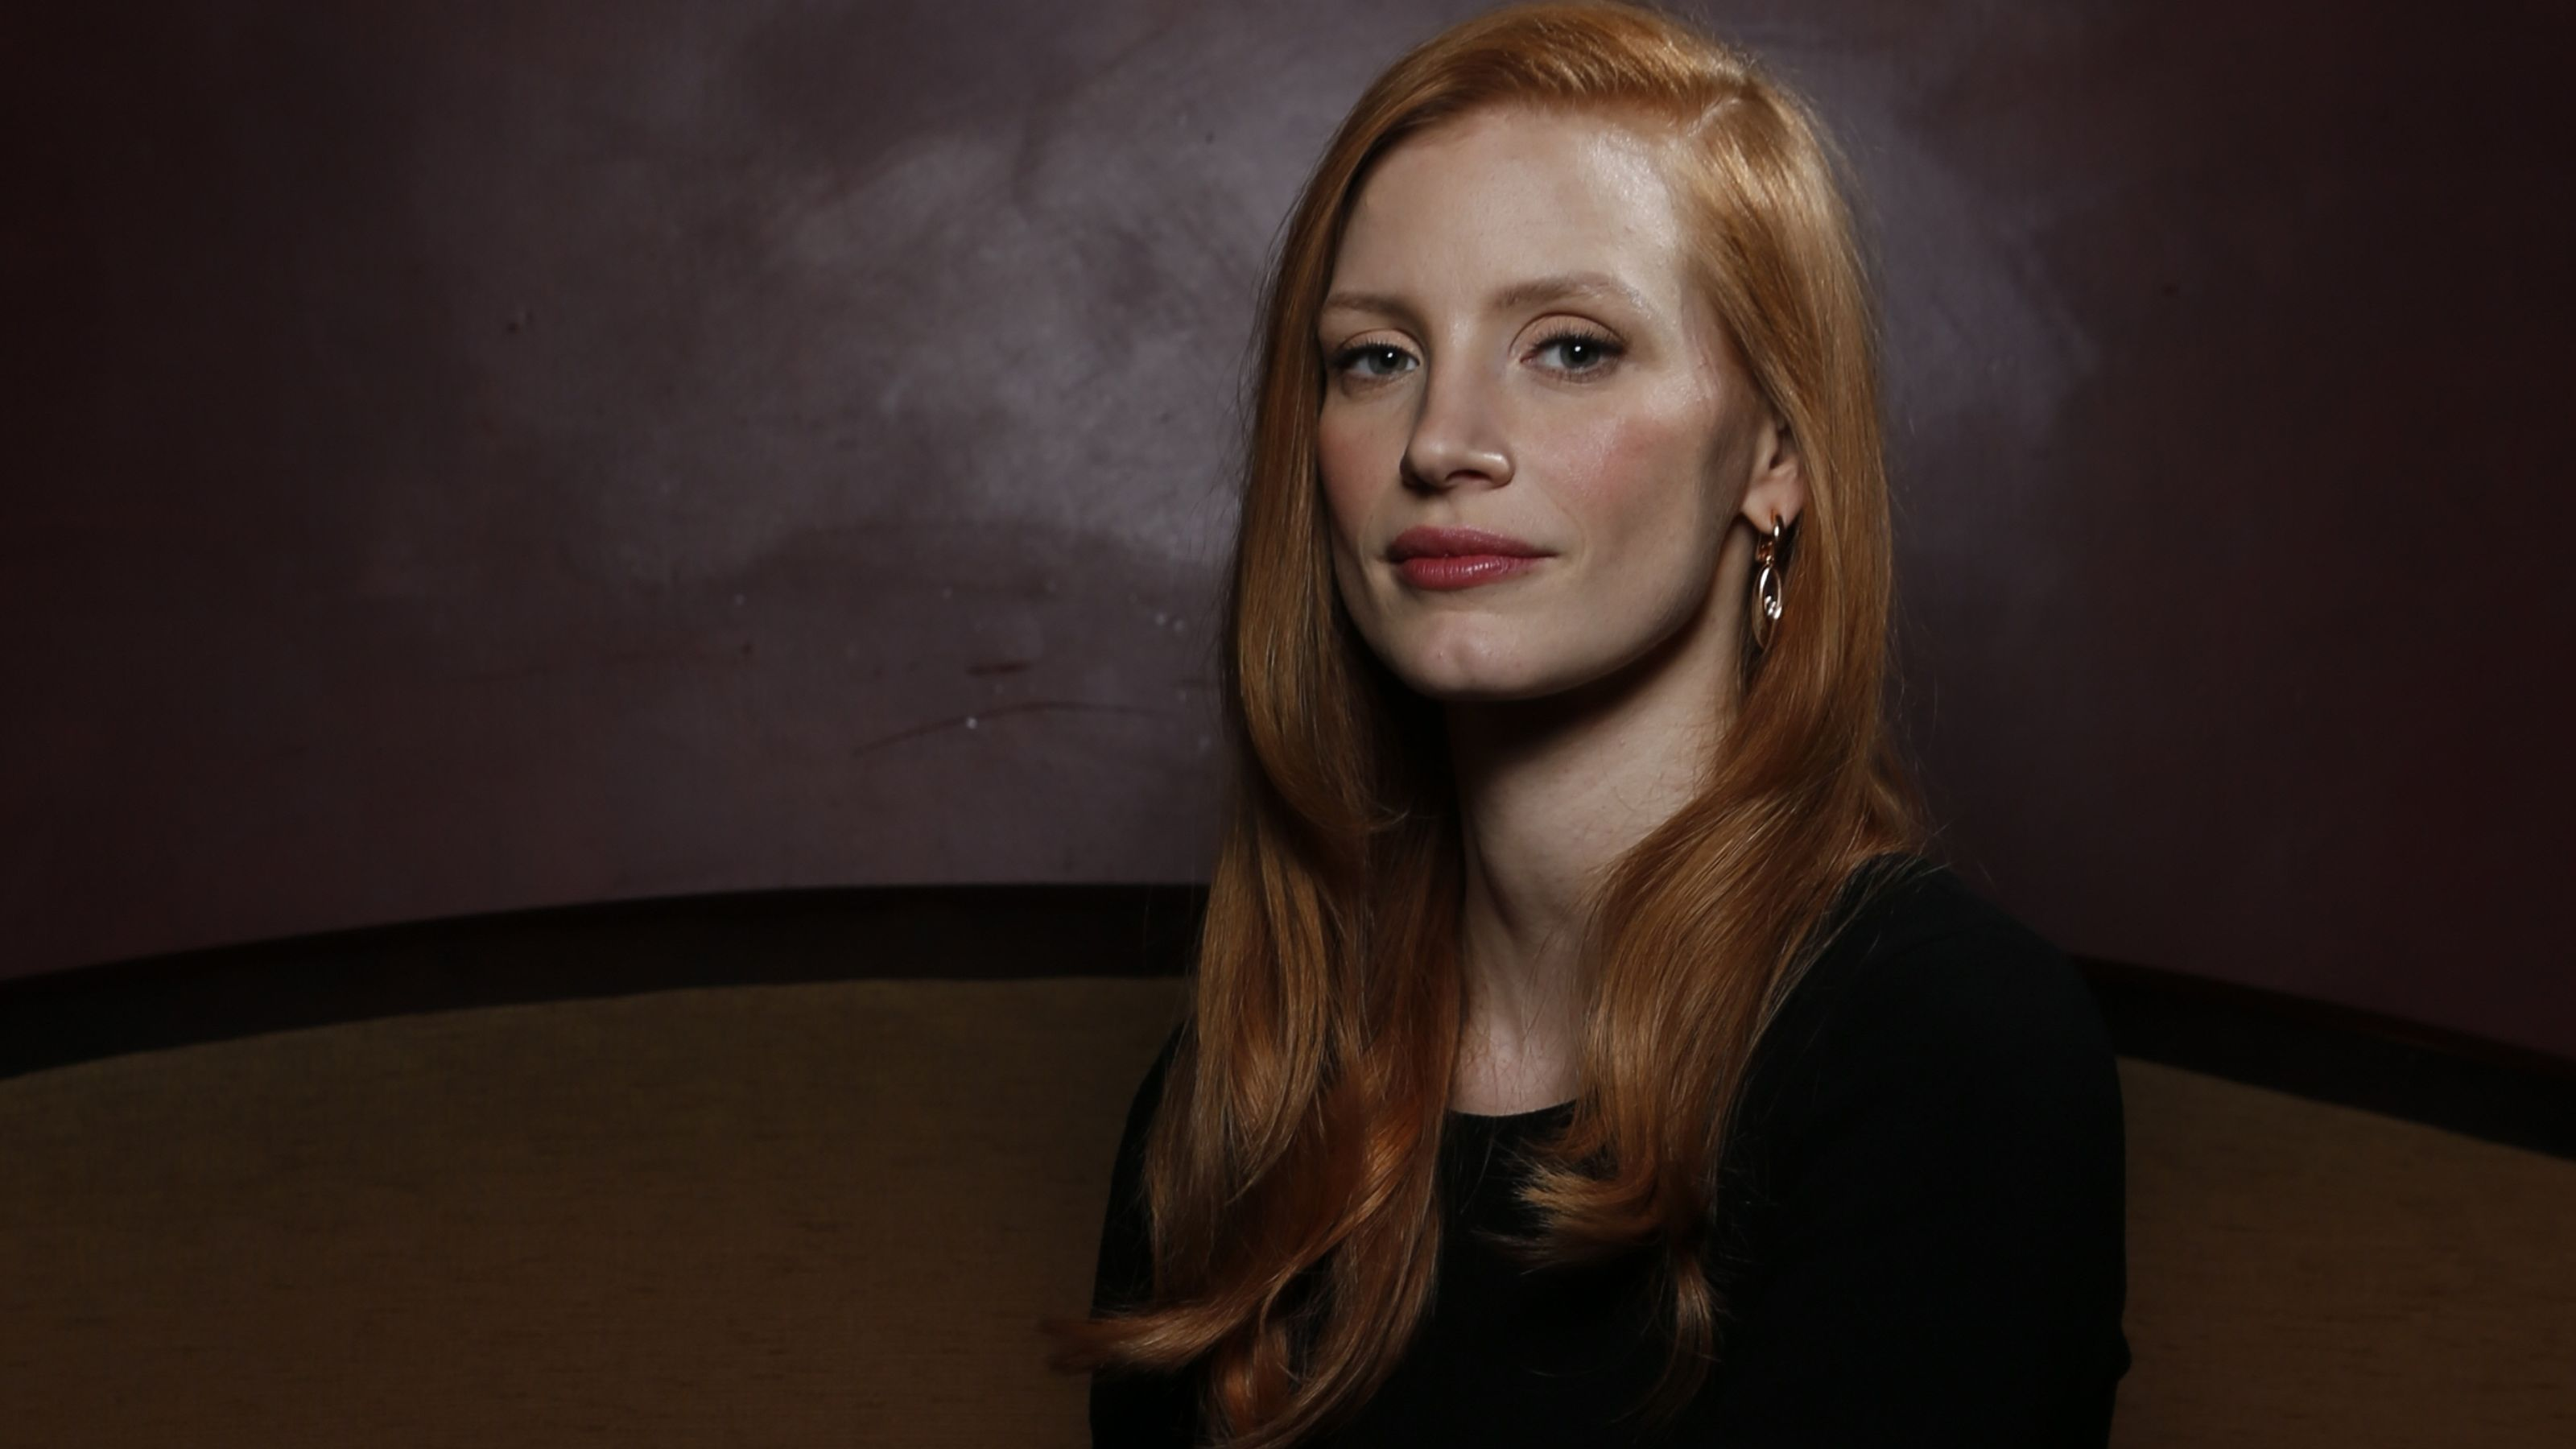 jessica-chastain-wallpaper-images-7193-7